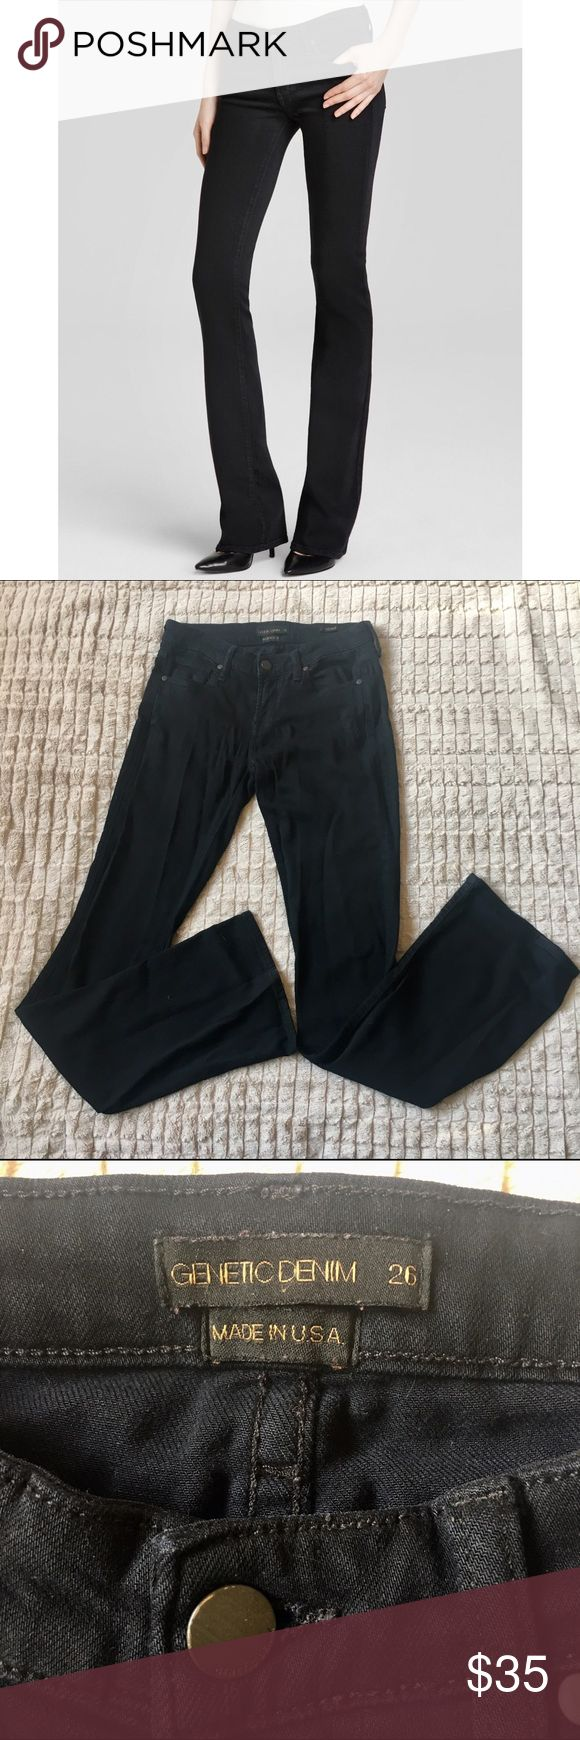 Genetic Denim black bootcut jeans Super cute and stylish. Pre-loved but lots of wear still in them :) Genetic Denim Jeans Boot Cut